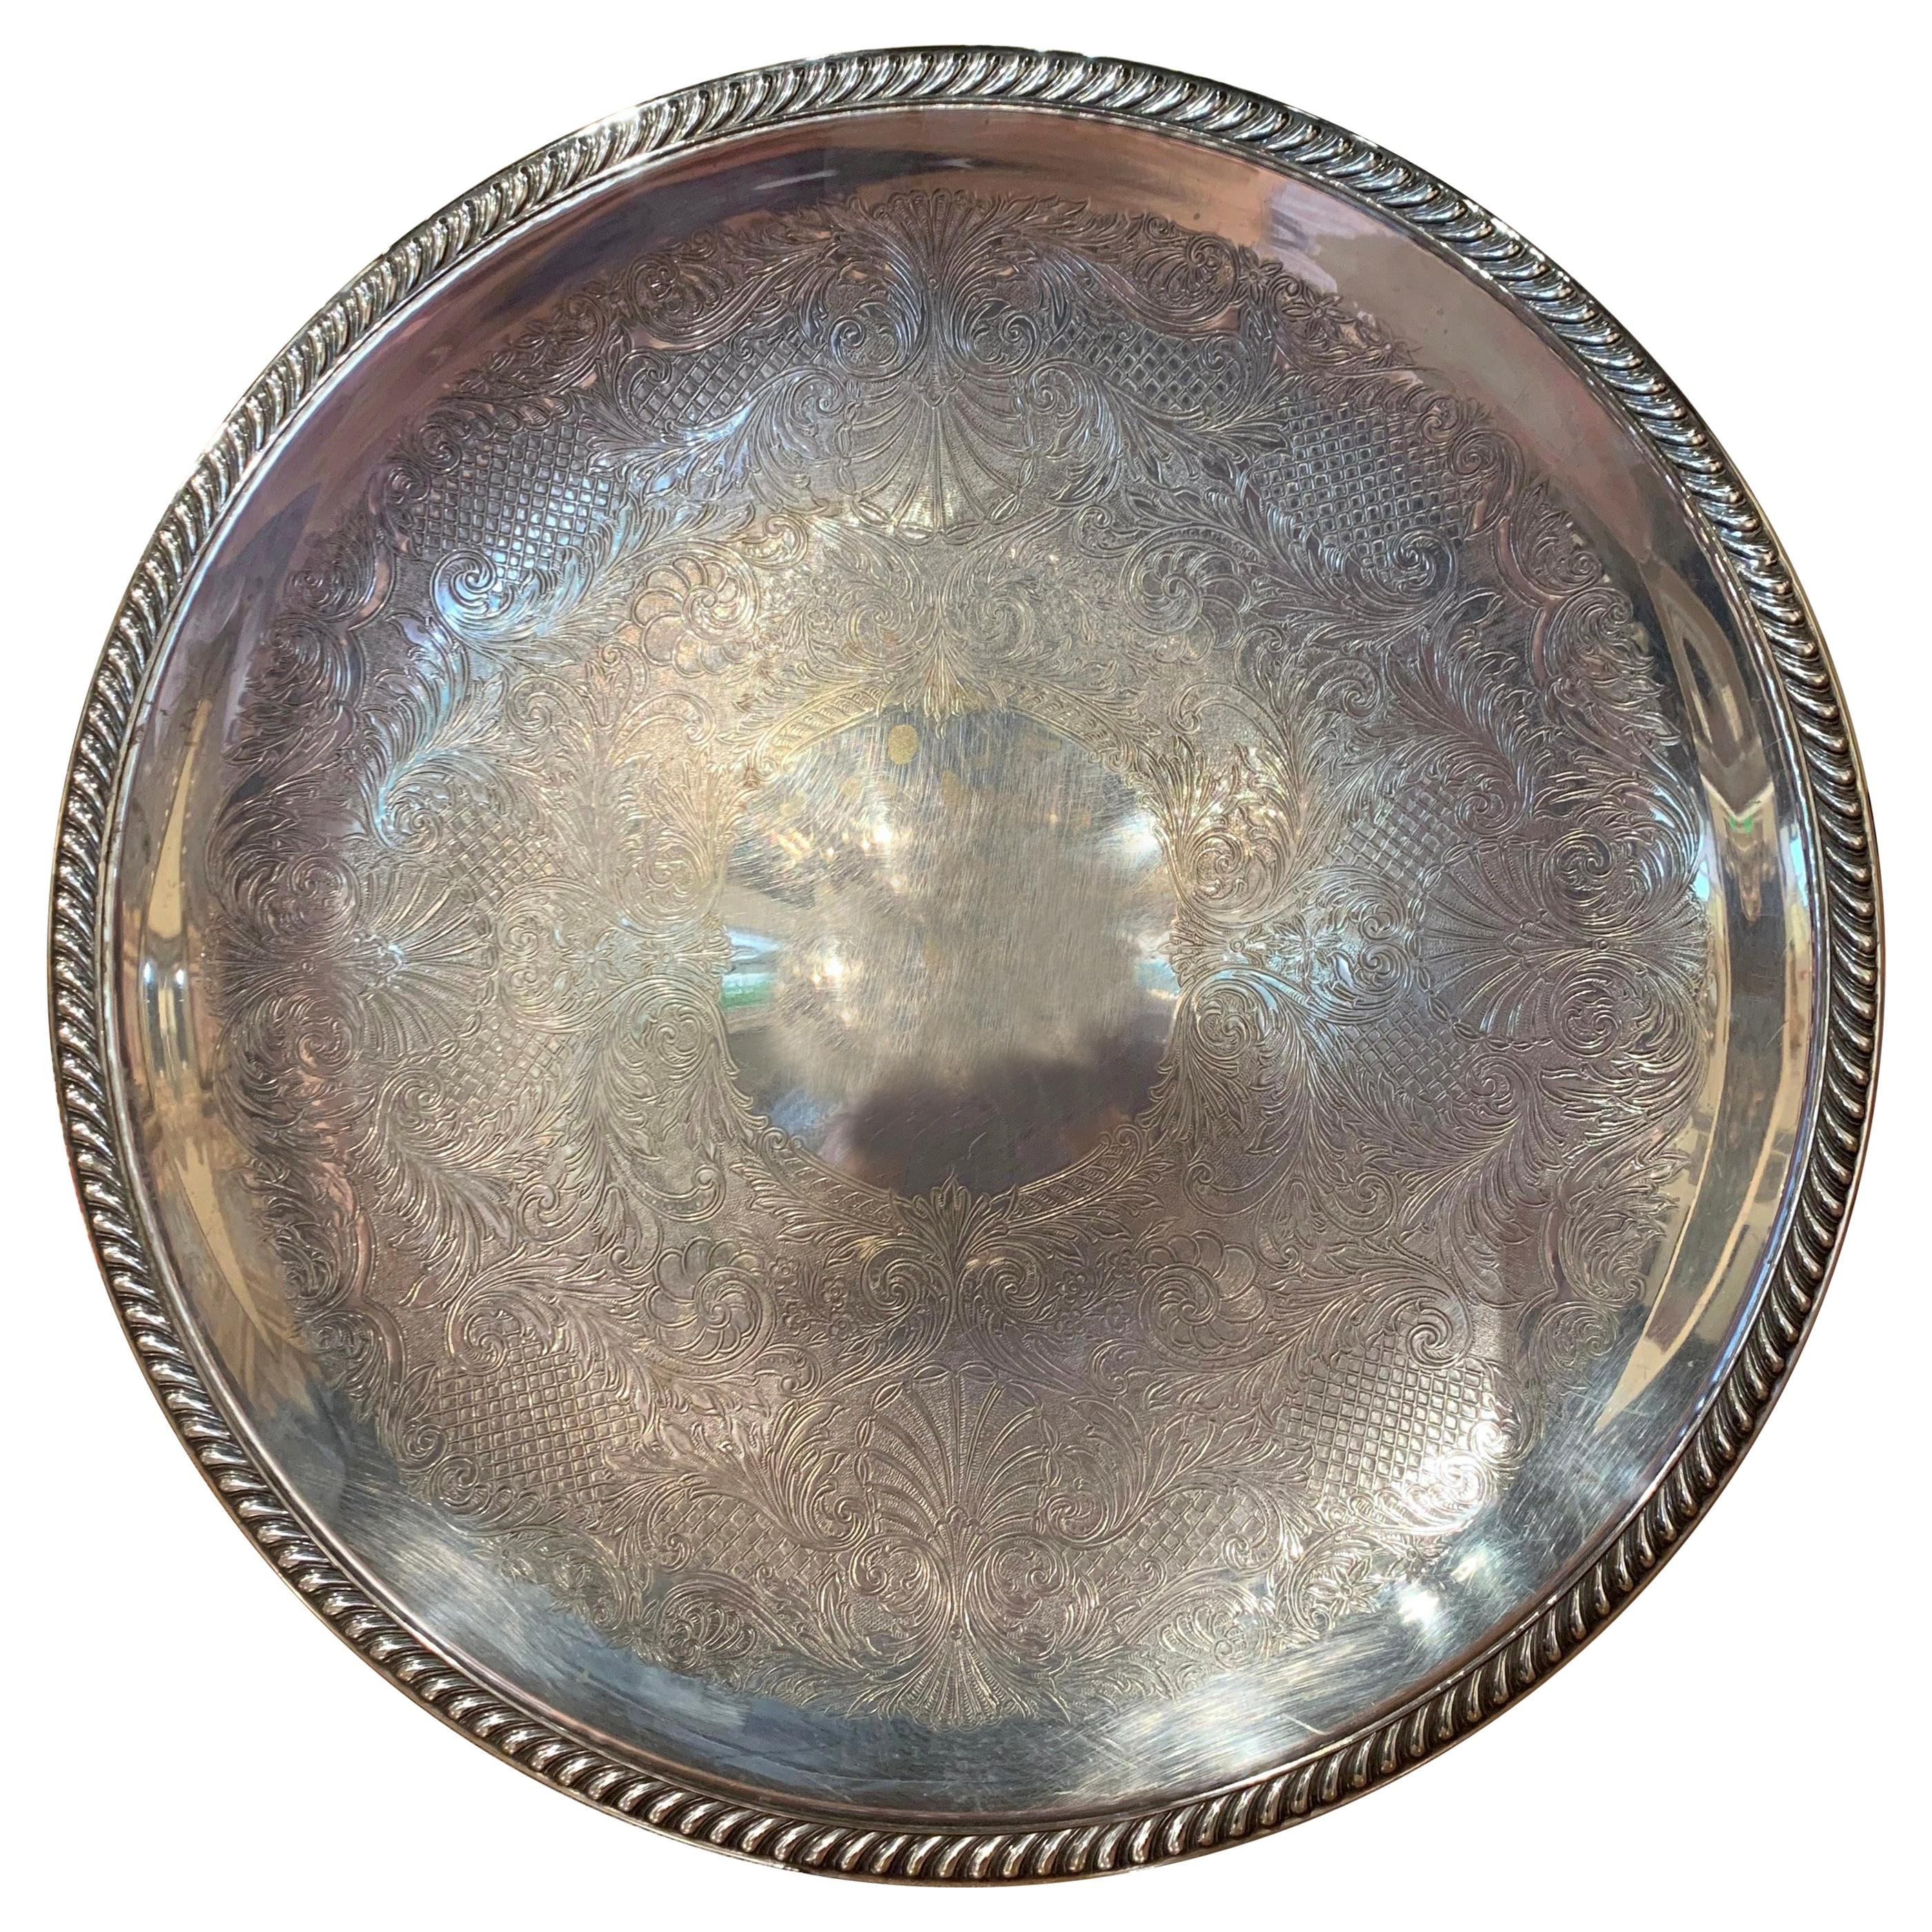 Early 20th Century Silver Plated over Brass Tray with Engraved Decor